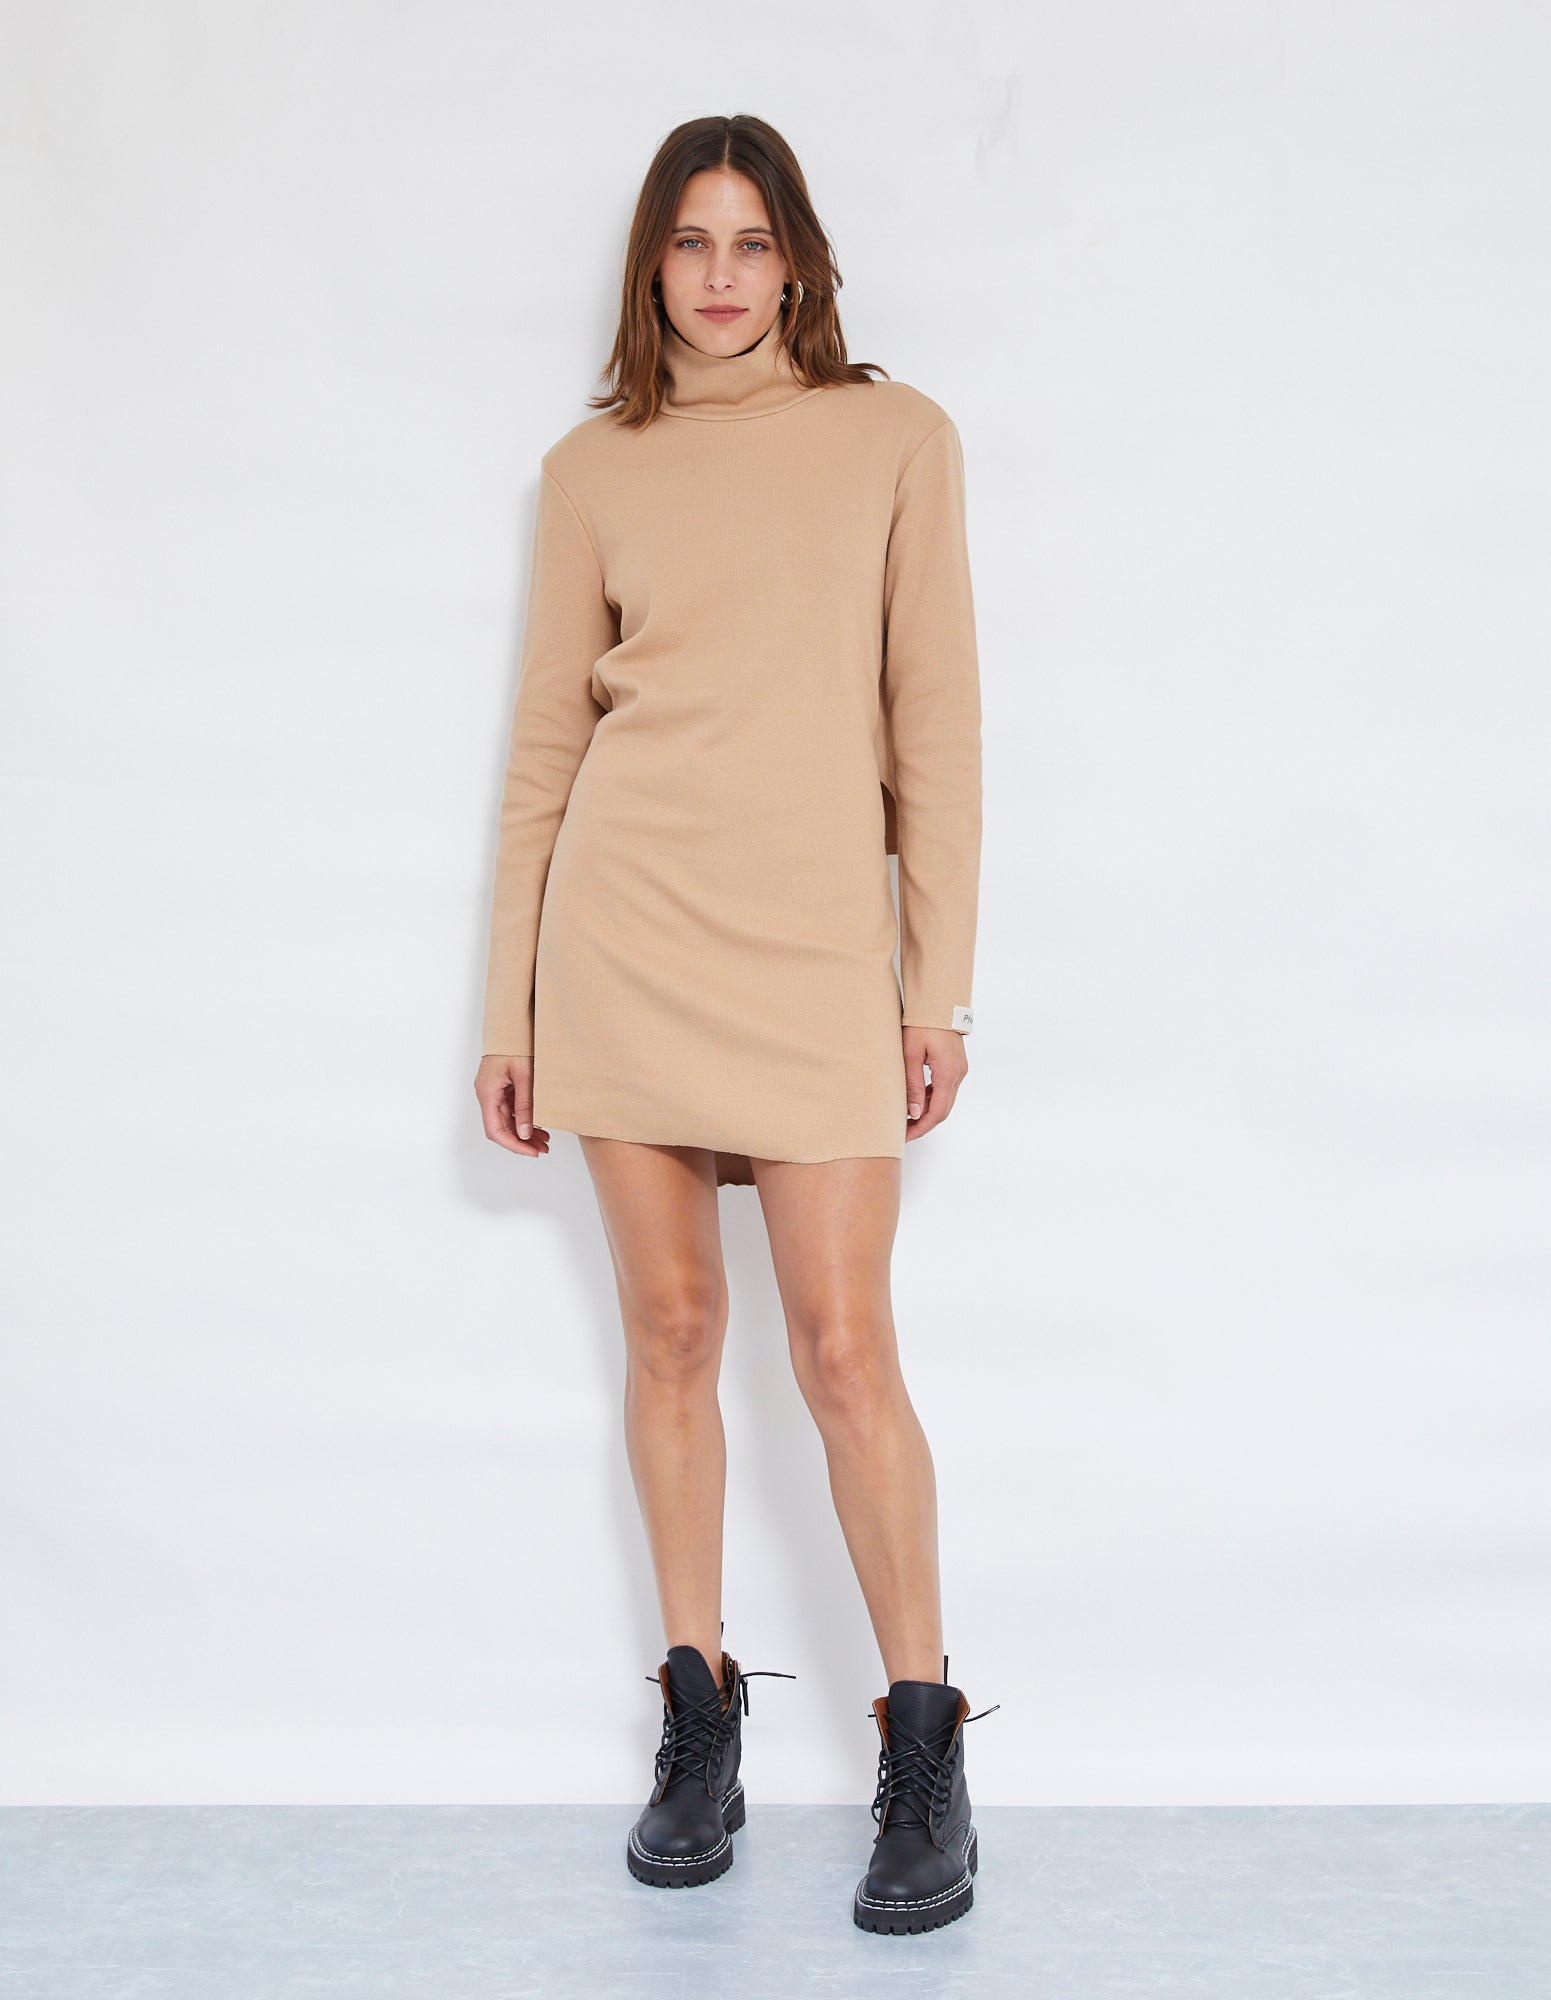 BRUNO RIB DRESS | BEIGE